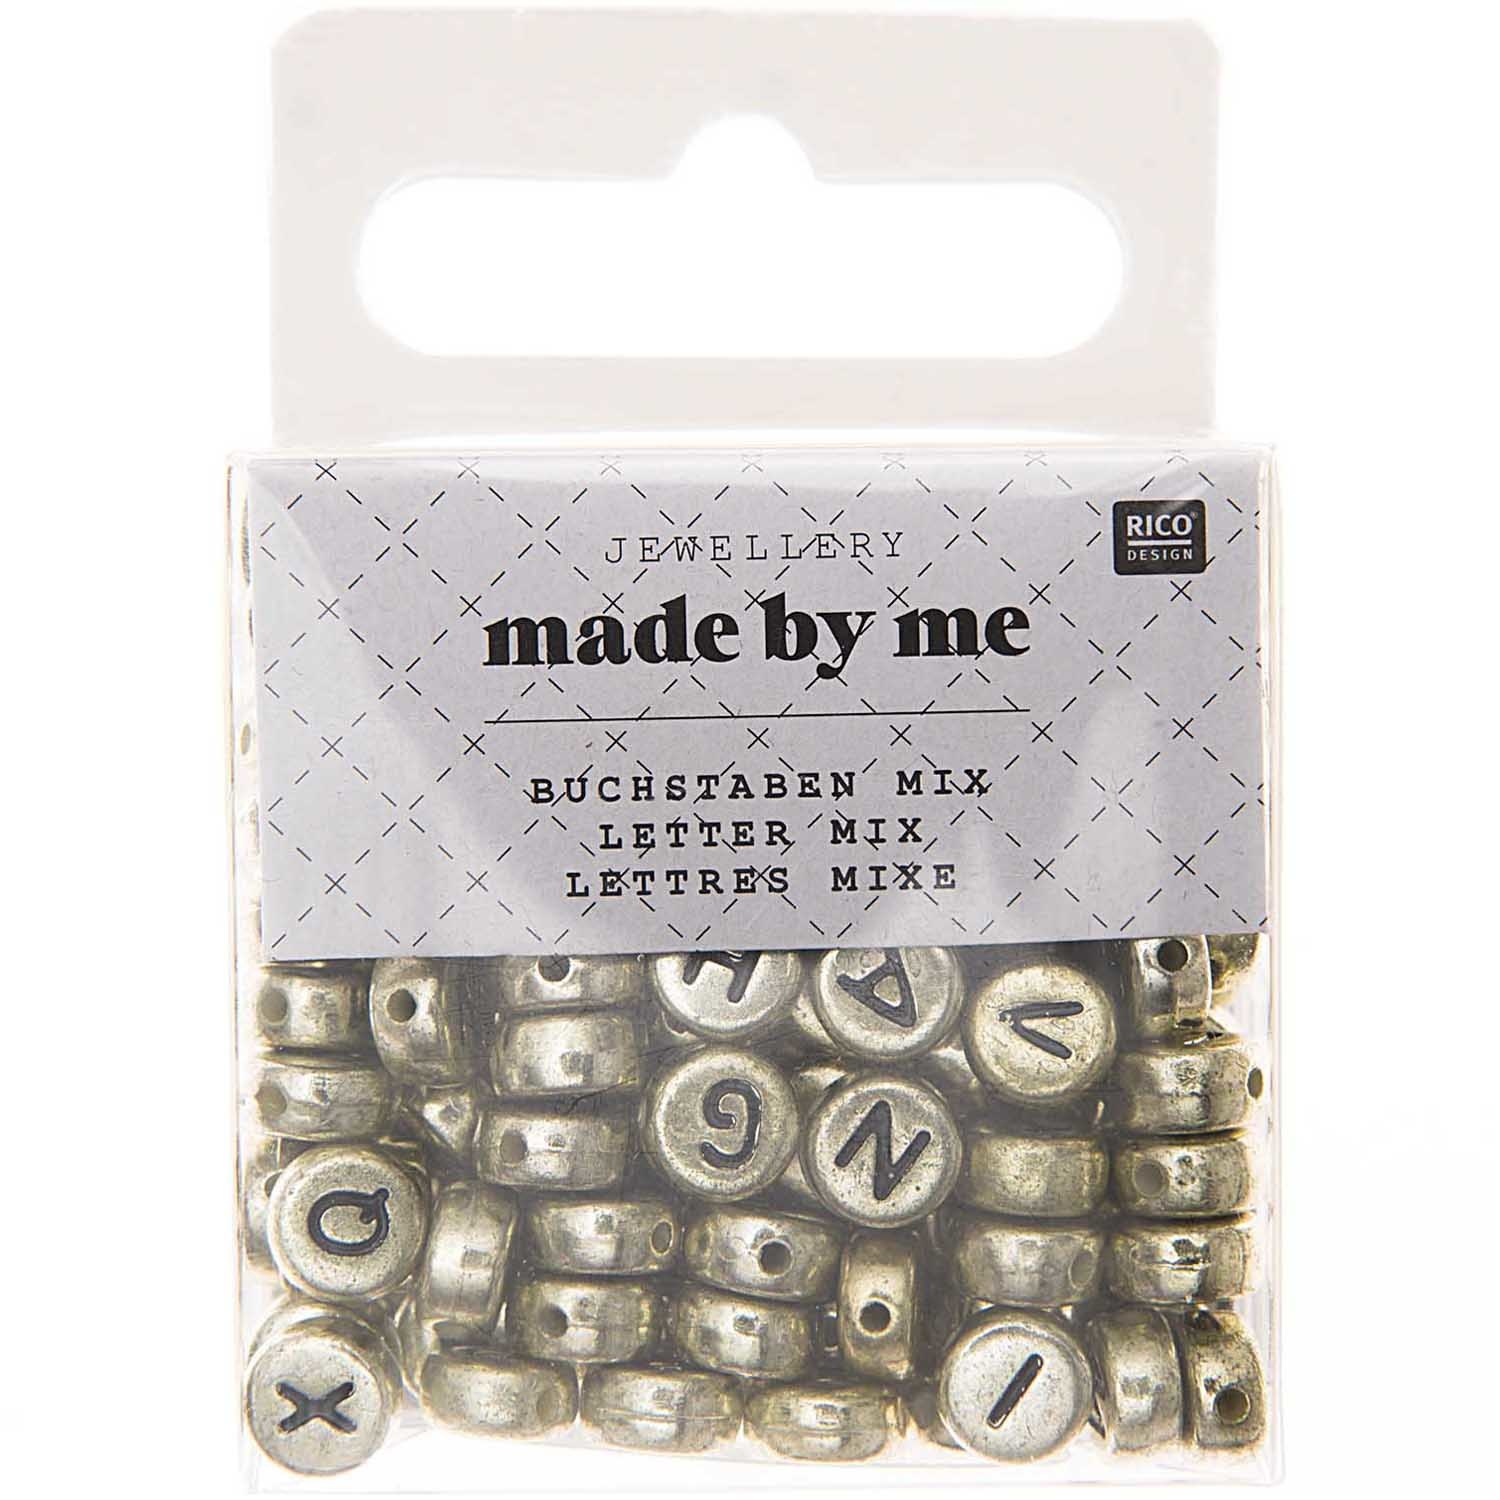 Rico NAY LETTERS MIX, ROUND, GOLD 165 PCS